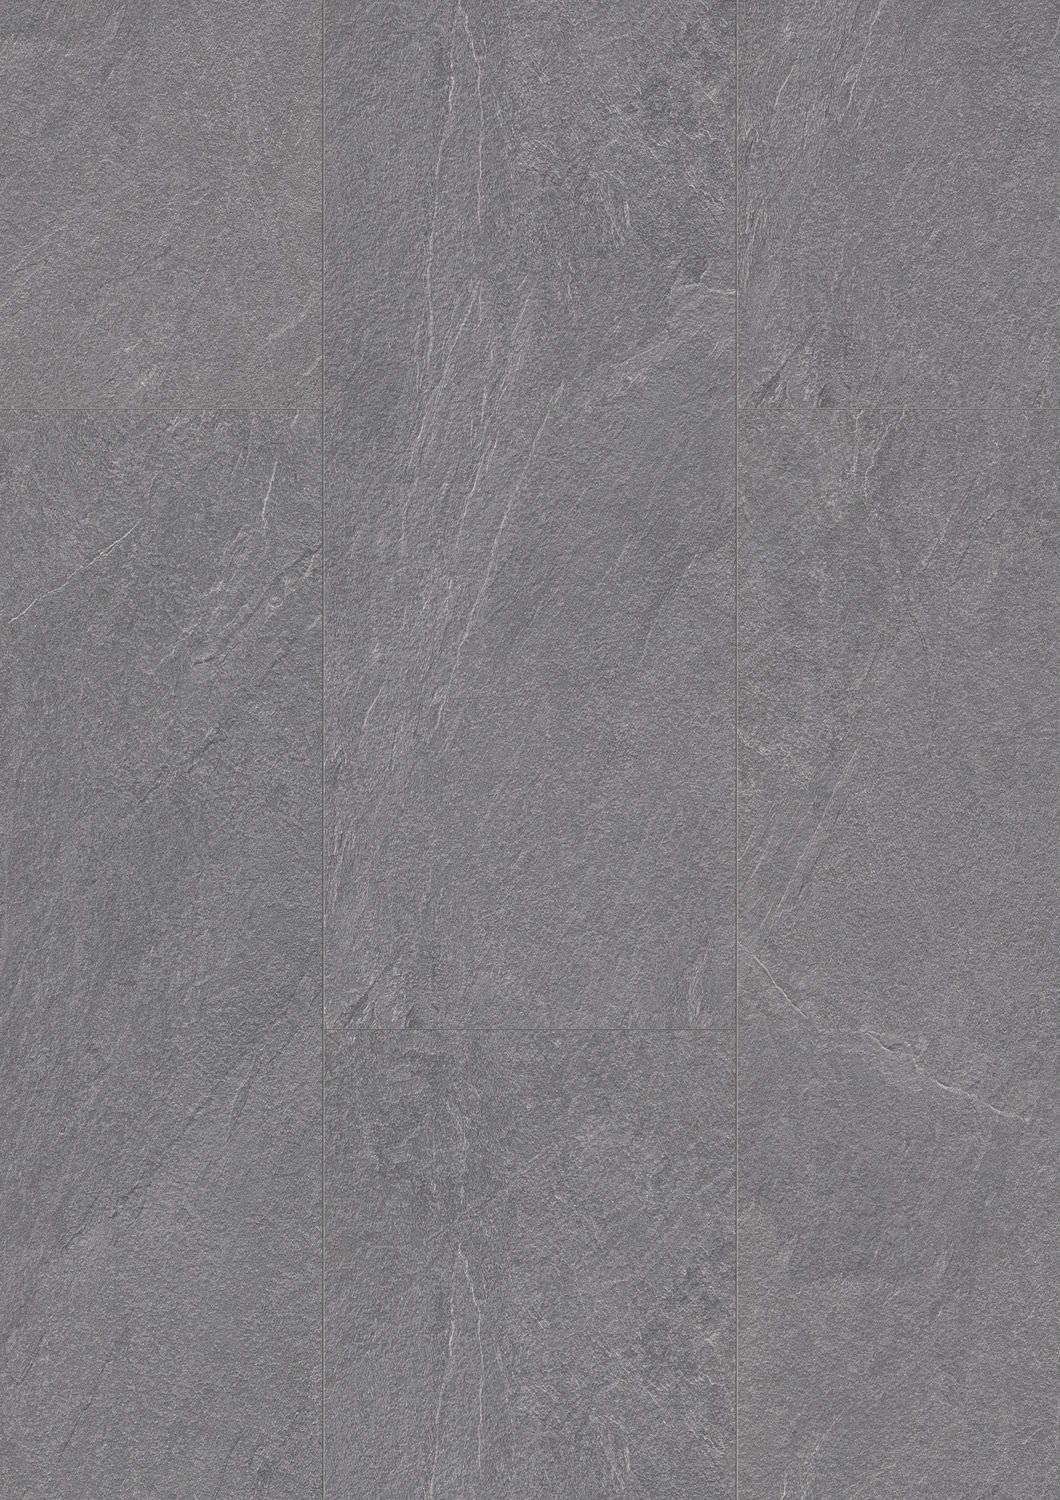 Hdf Laminate Flooring Fit Stone Look Tile Light Grey Slate L0120 01780